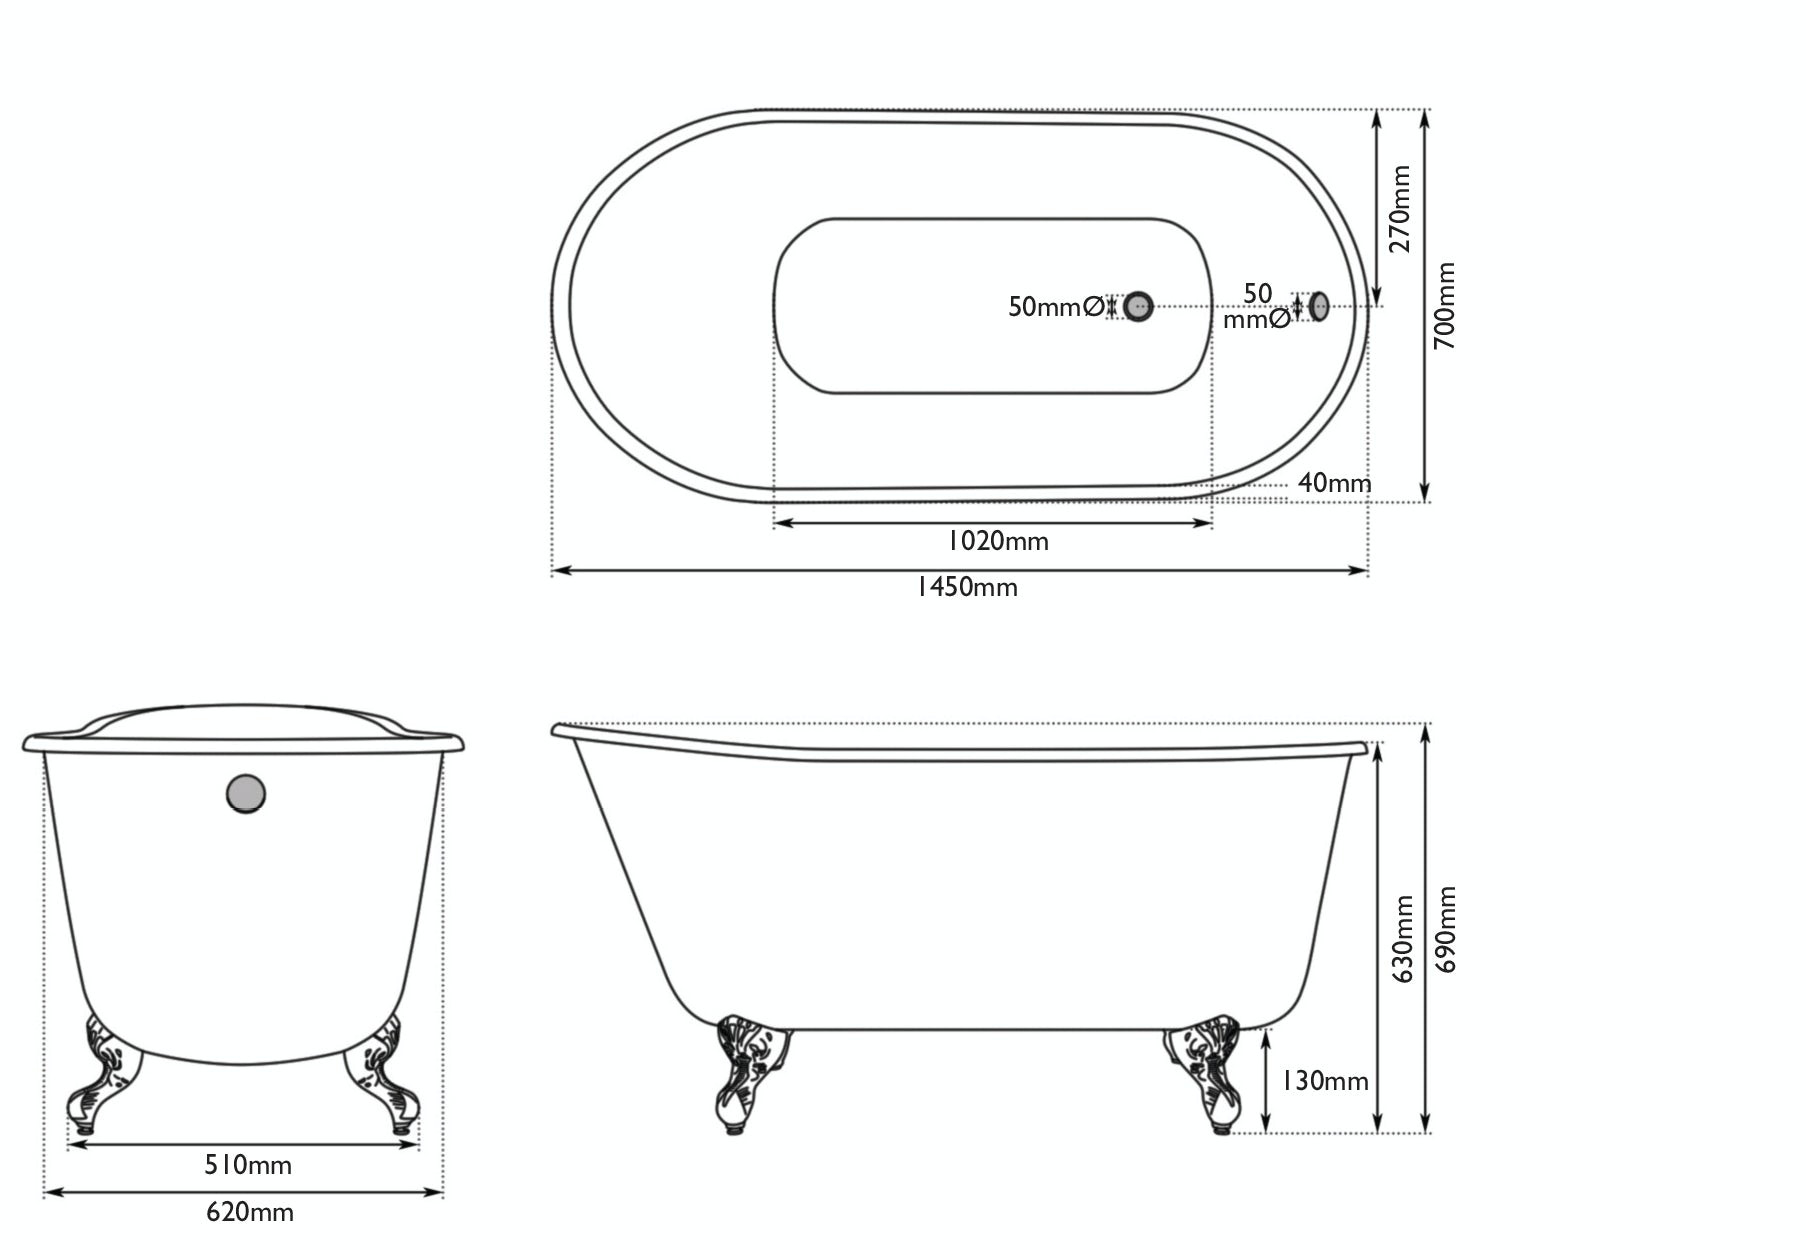 Dimensions for The Bath Co. Warwick misted green cast iron bath